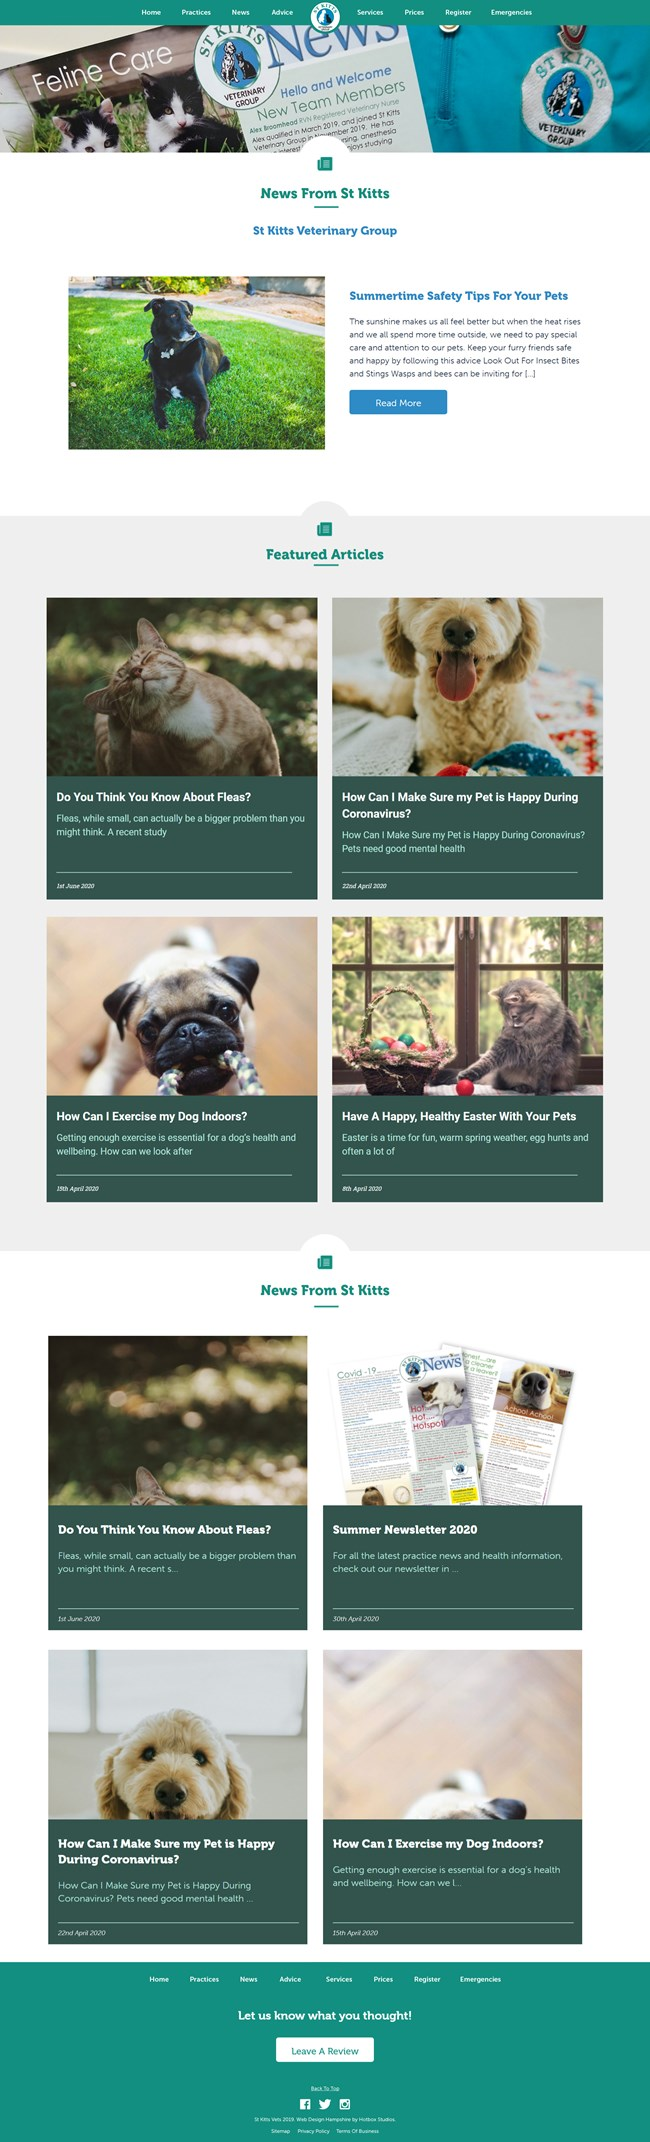 St Kitts Vet Website Design and WordPress Web Development SP008 News